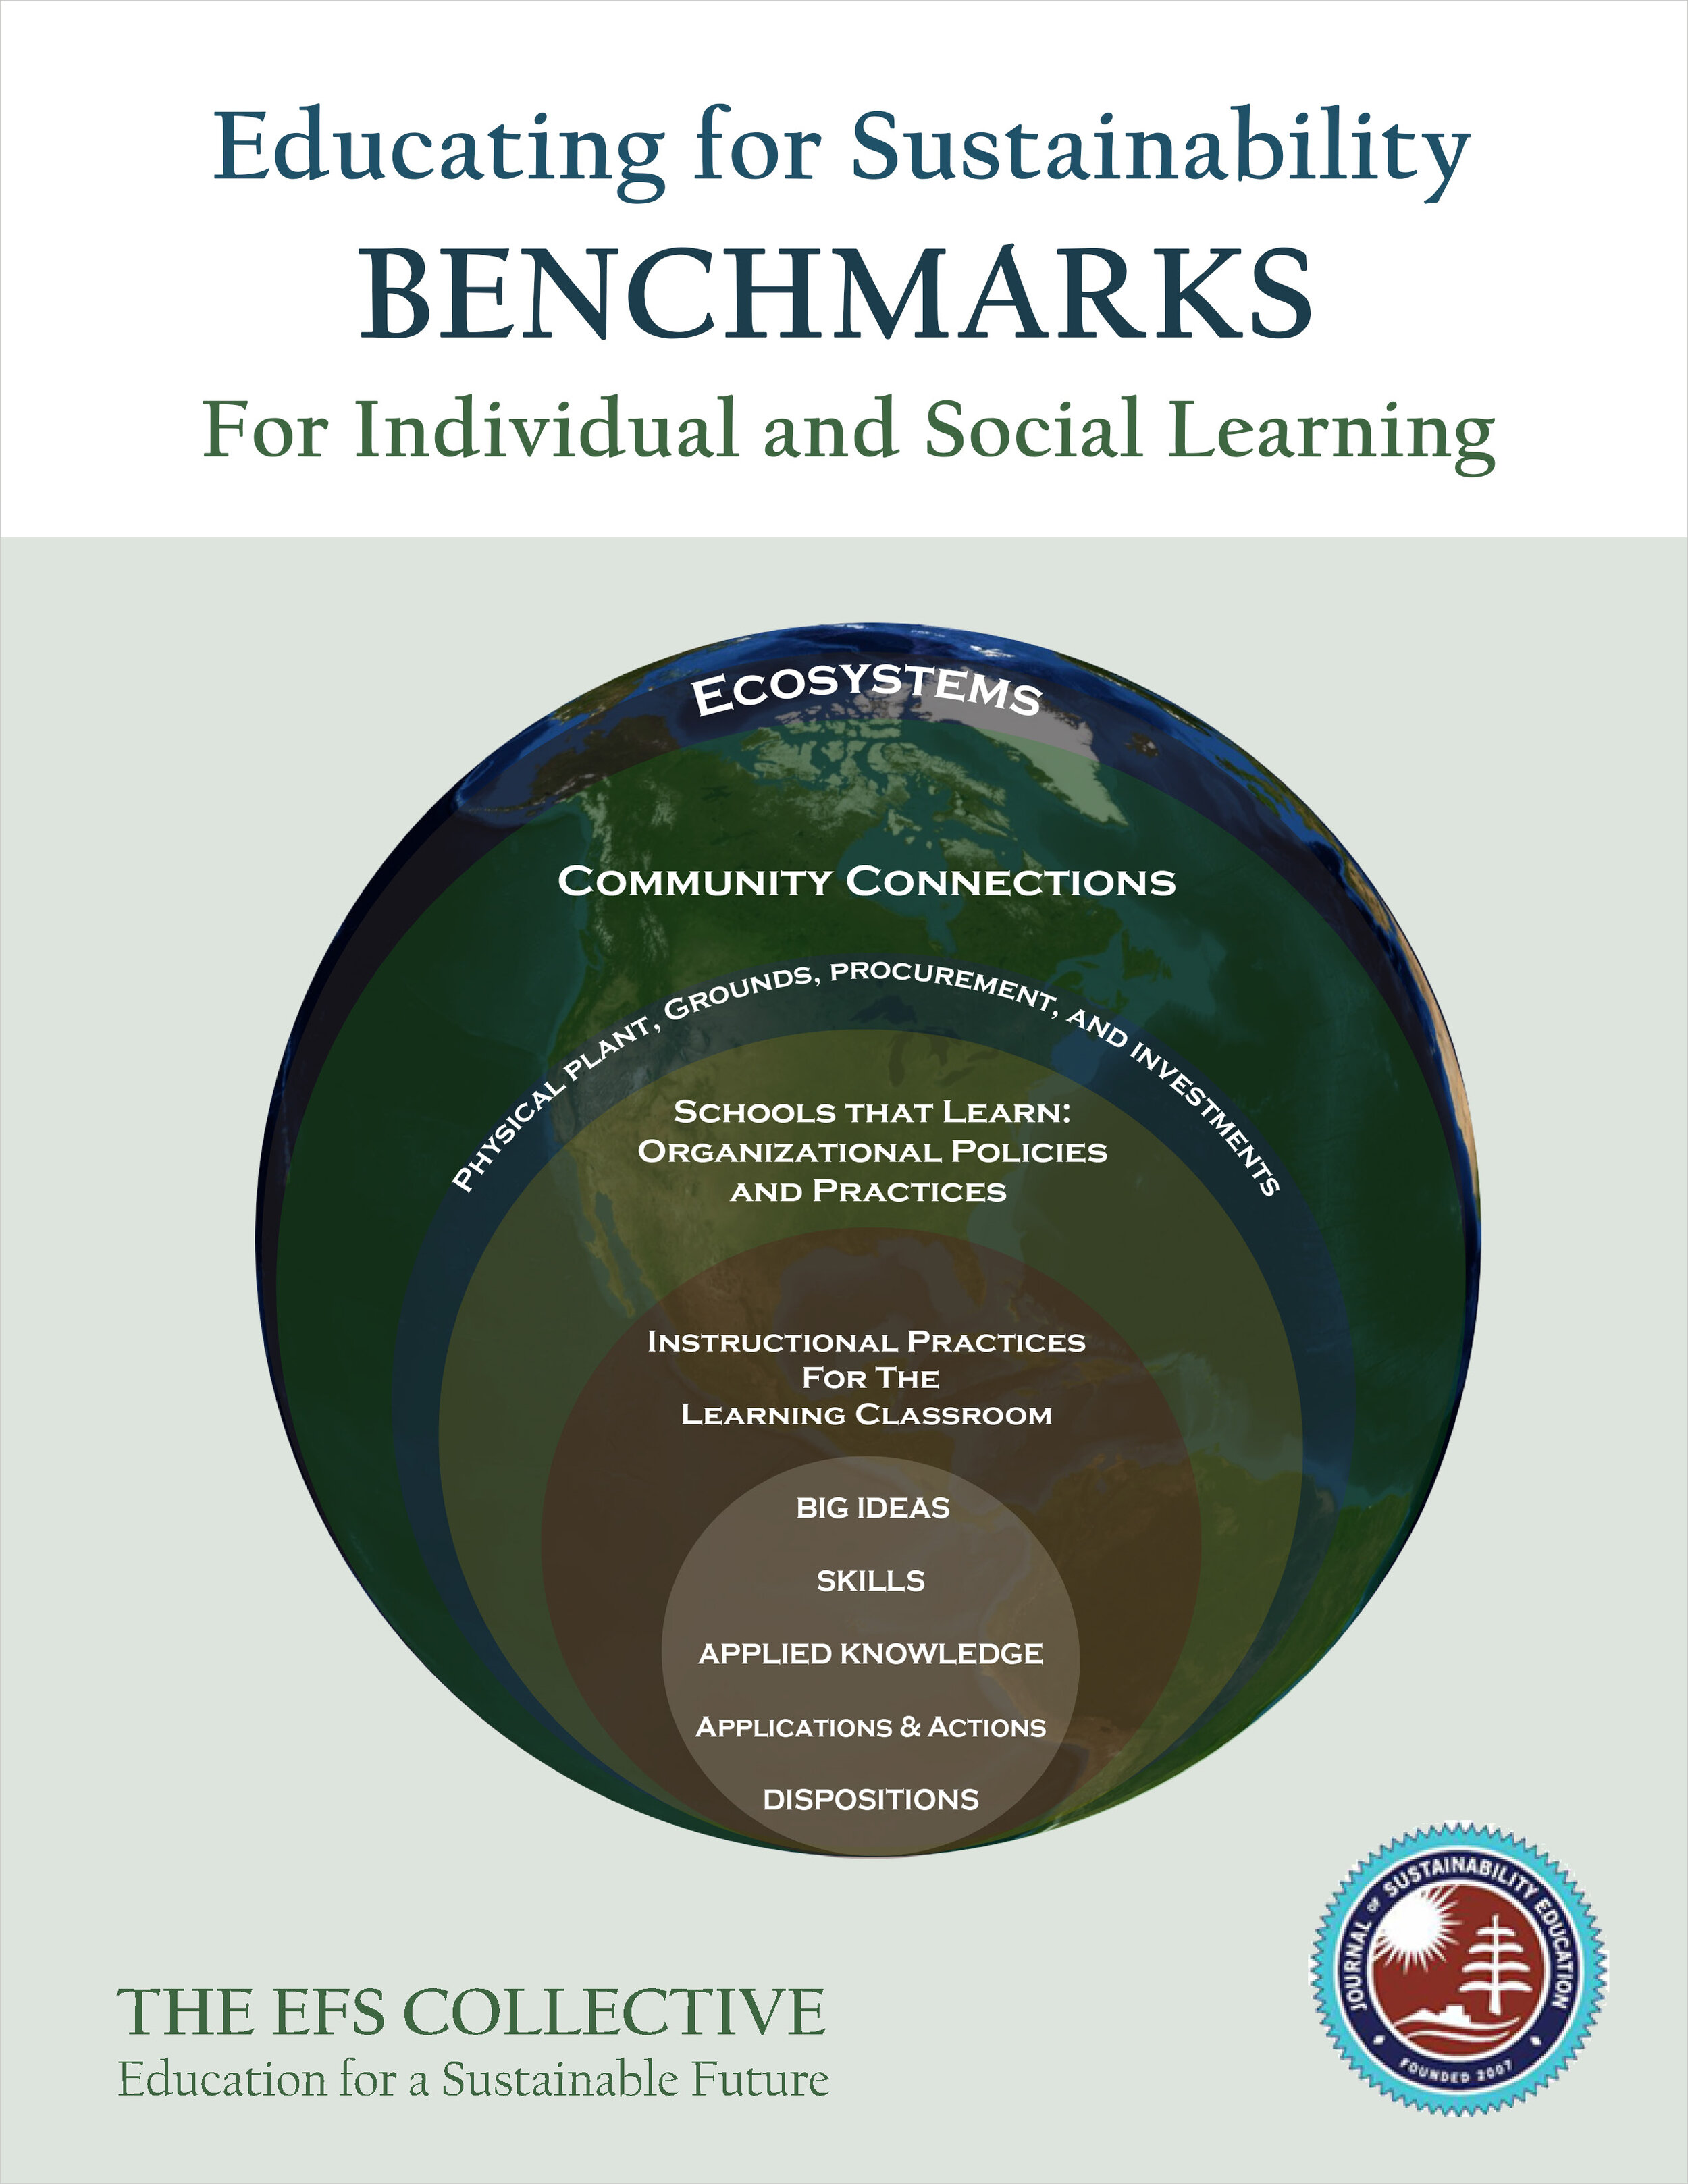 Download The EfS Benchmarks_Page_01.jpg